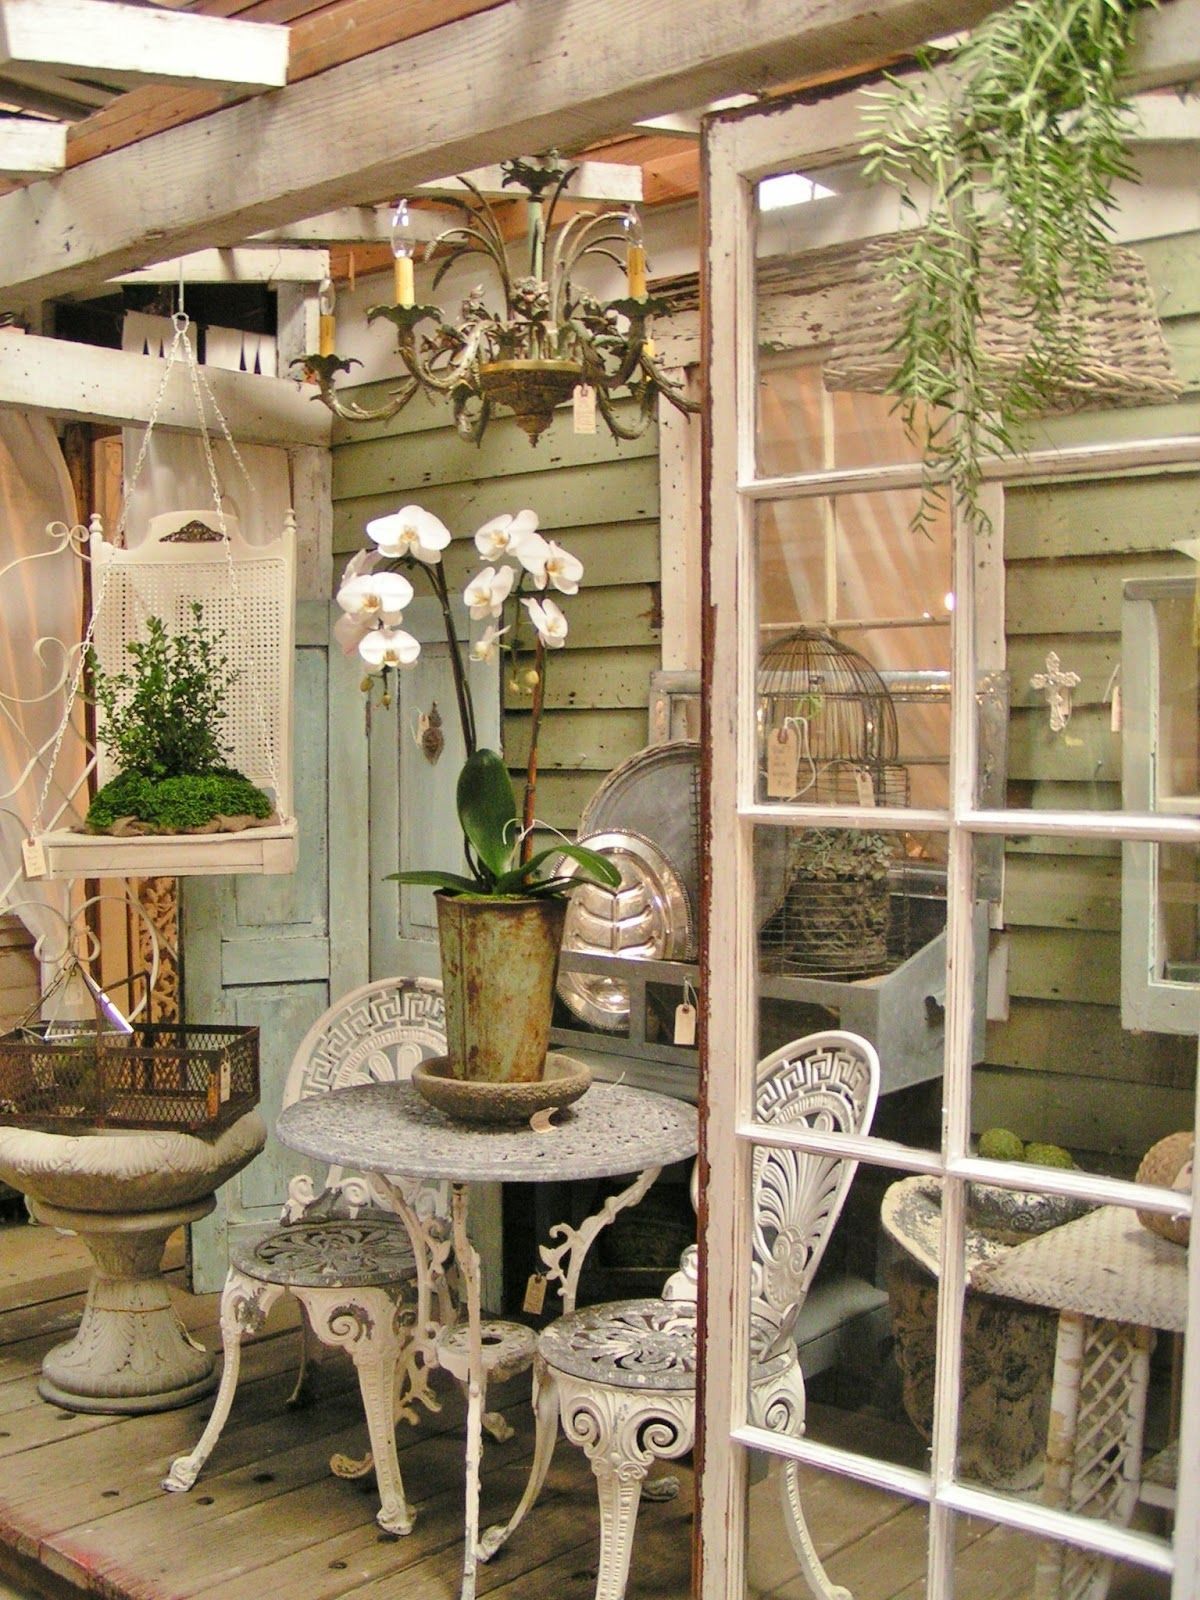 Tara would set up a vignette like this in her boutique in the novel Shabby Chic at Heart